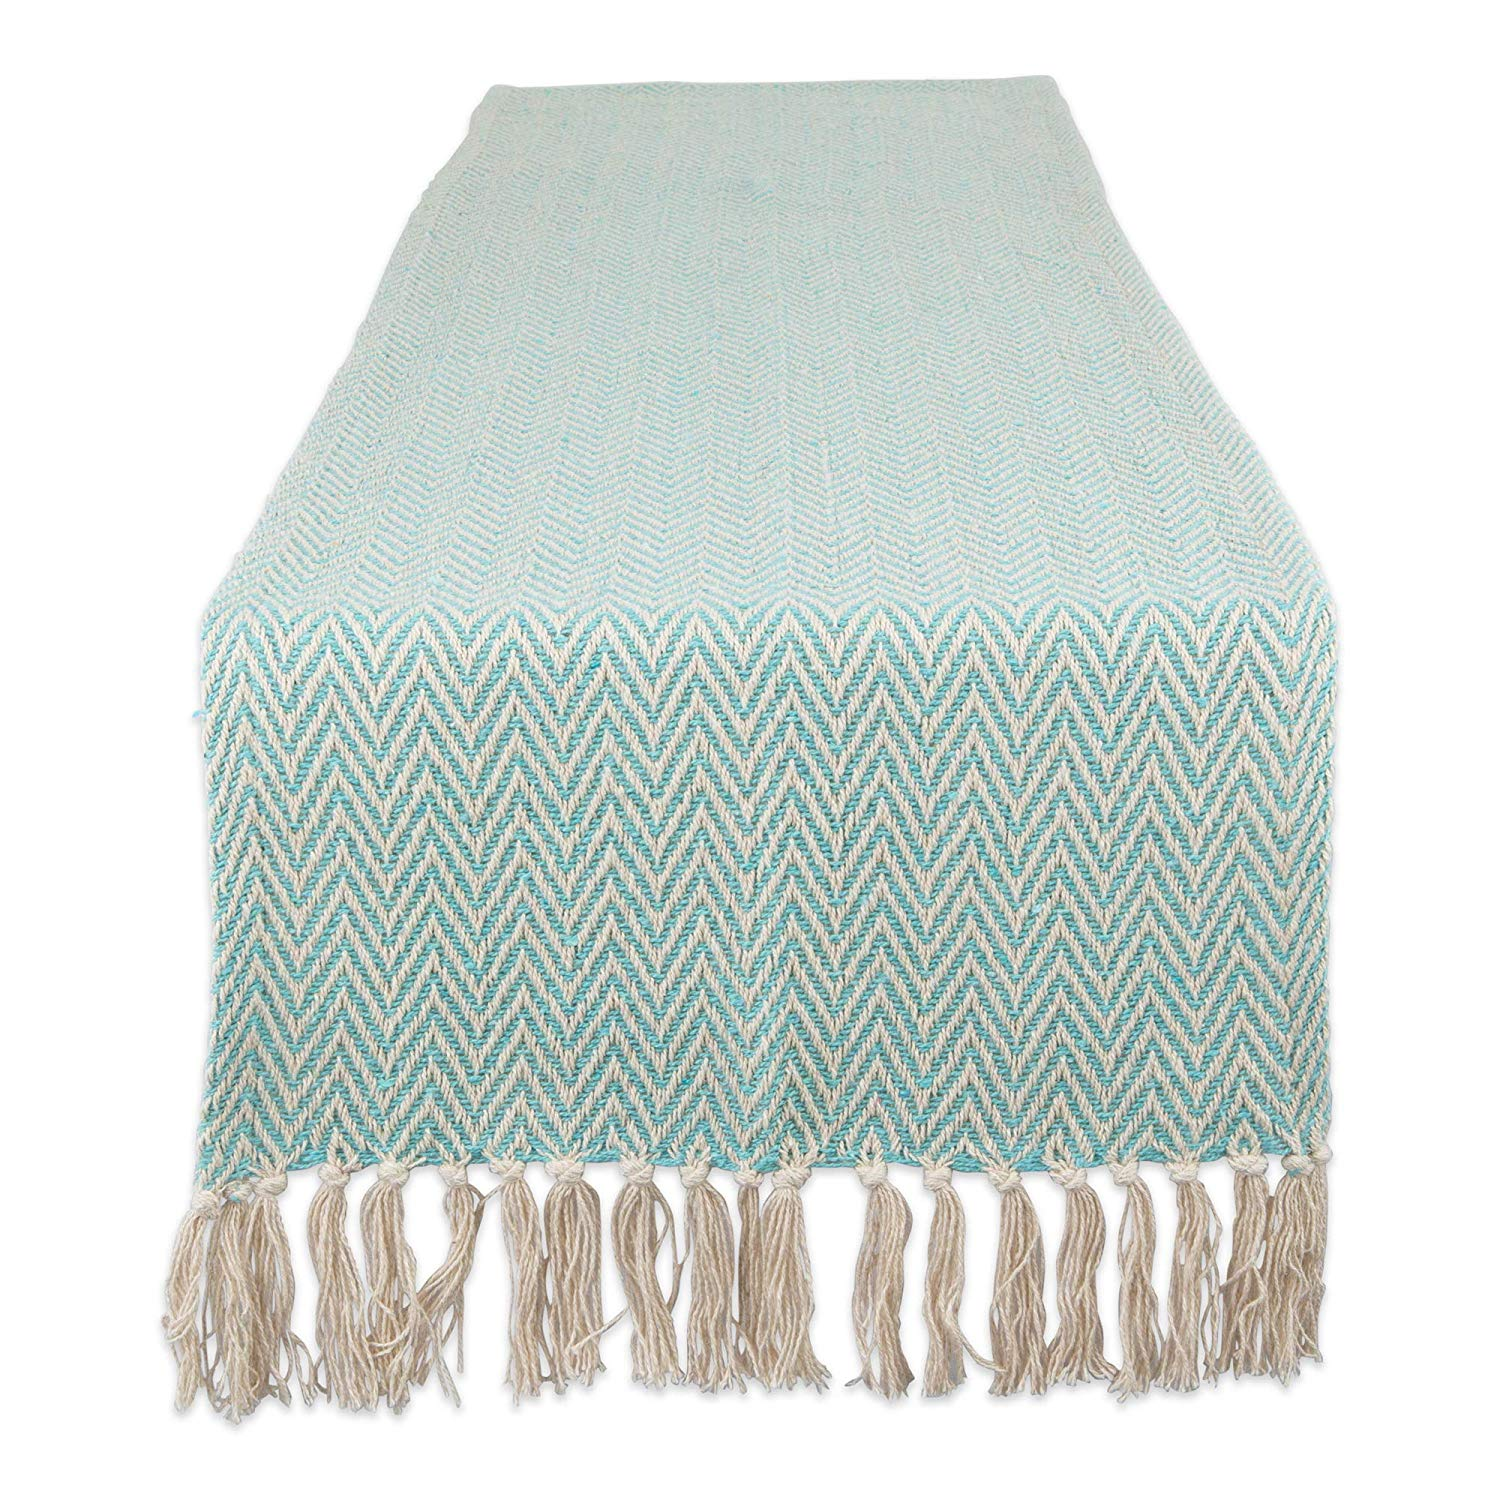 DII-Braided-Cotton-Table-Runner